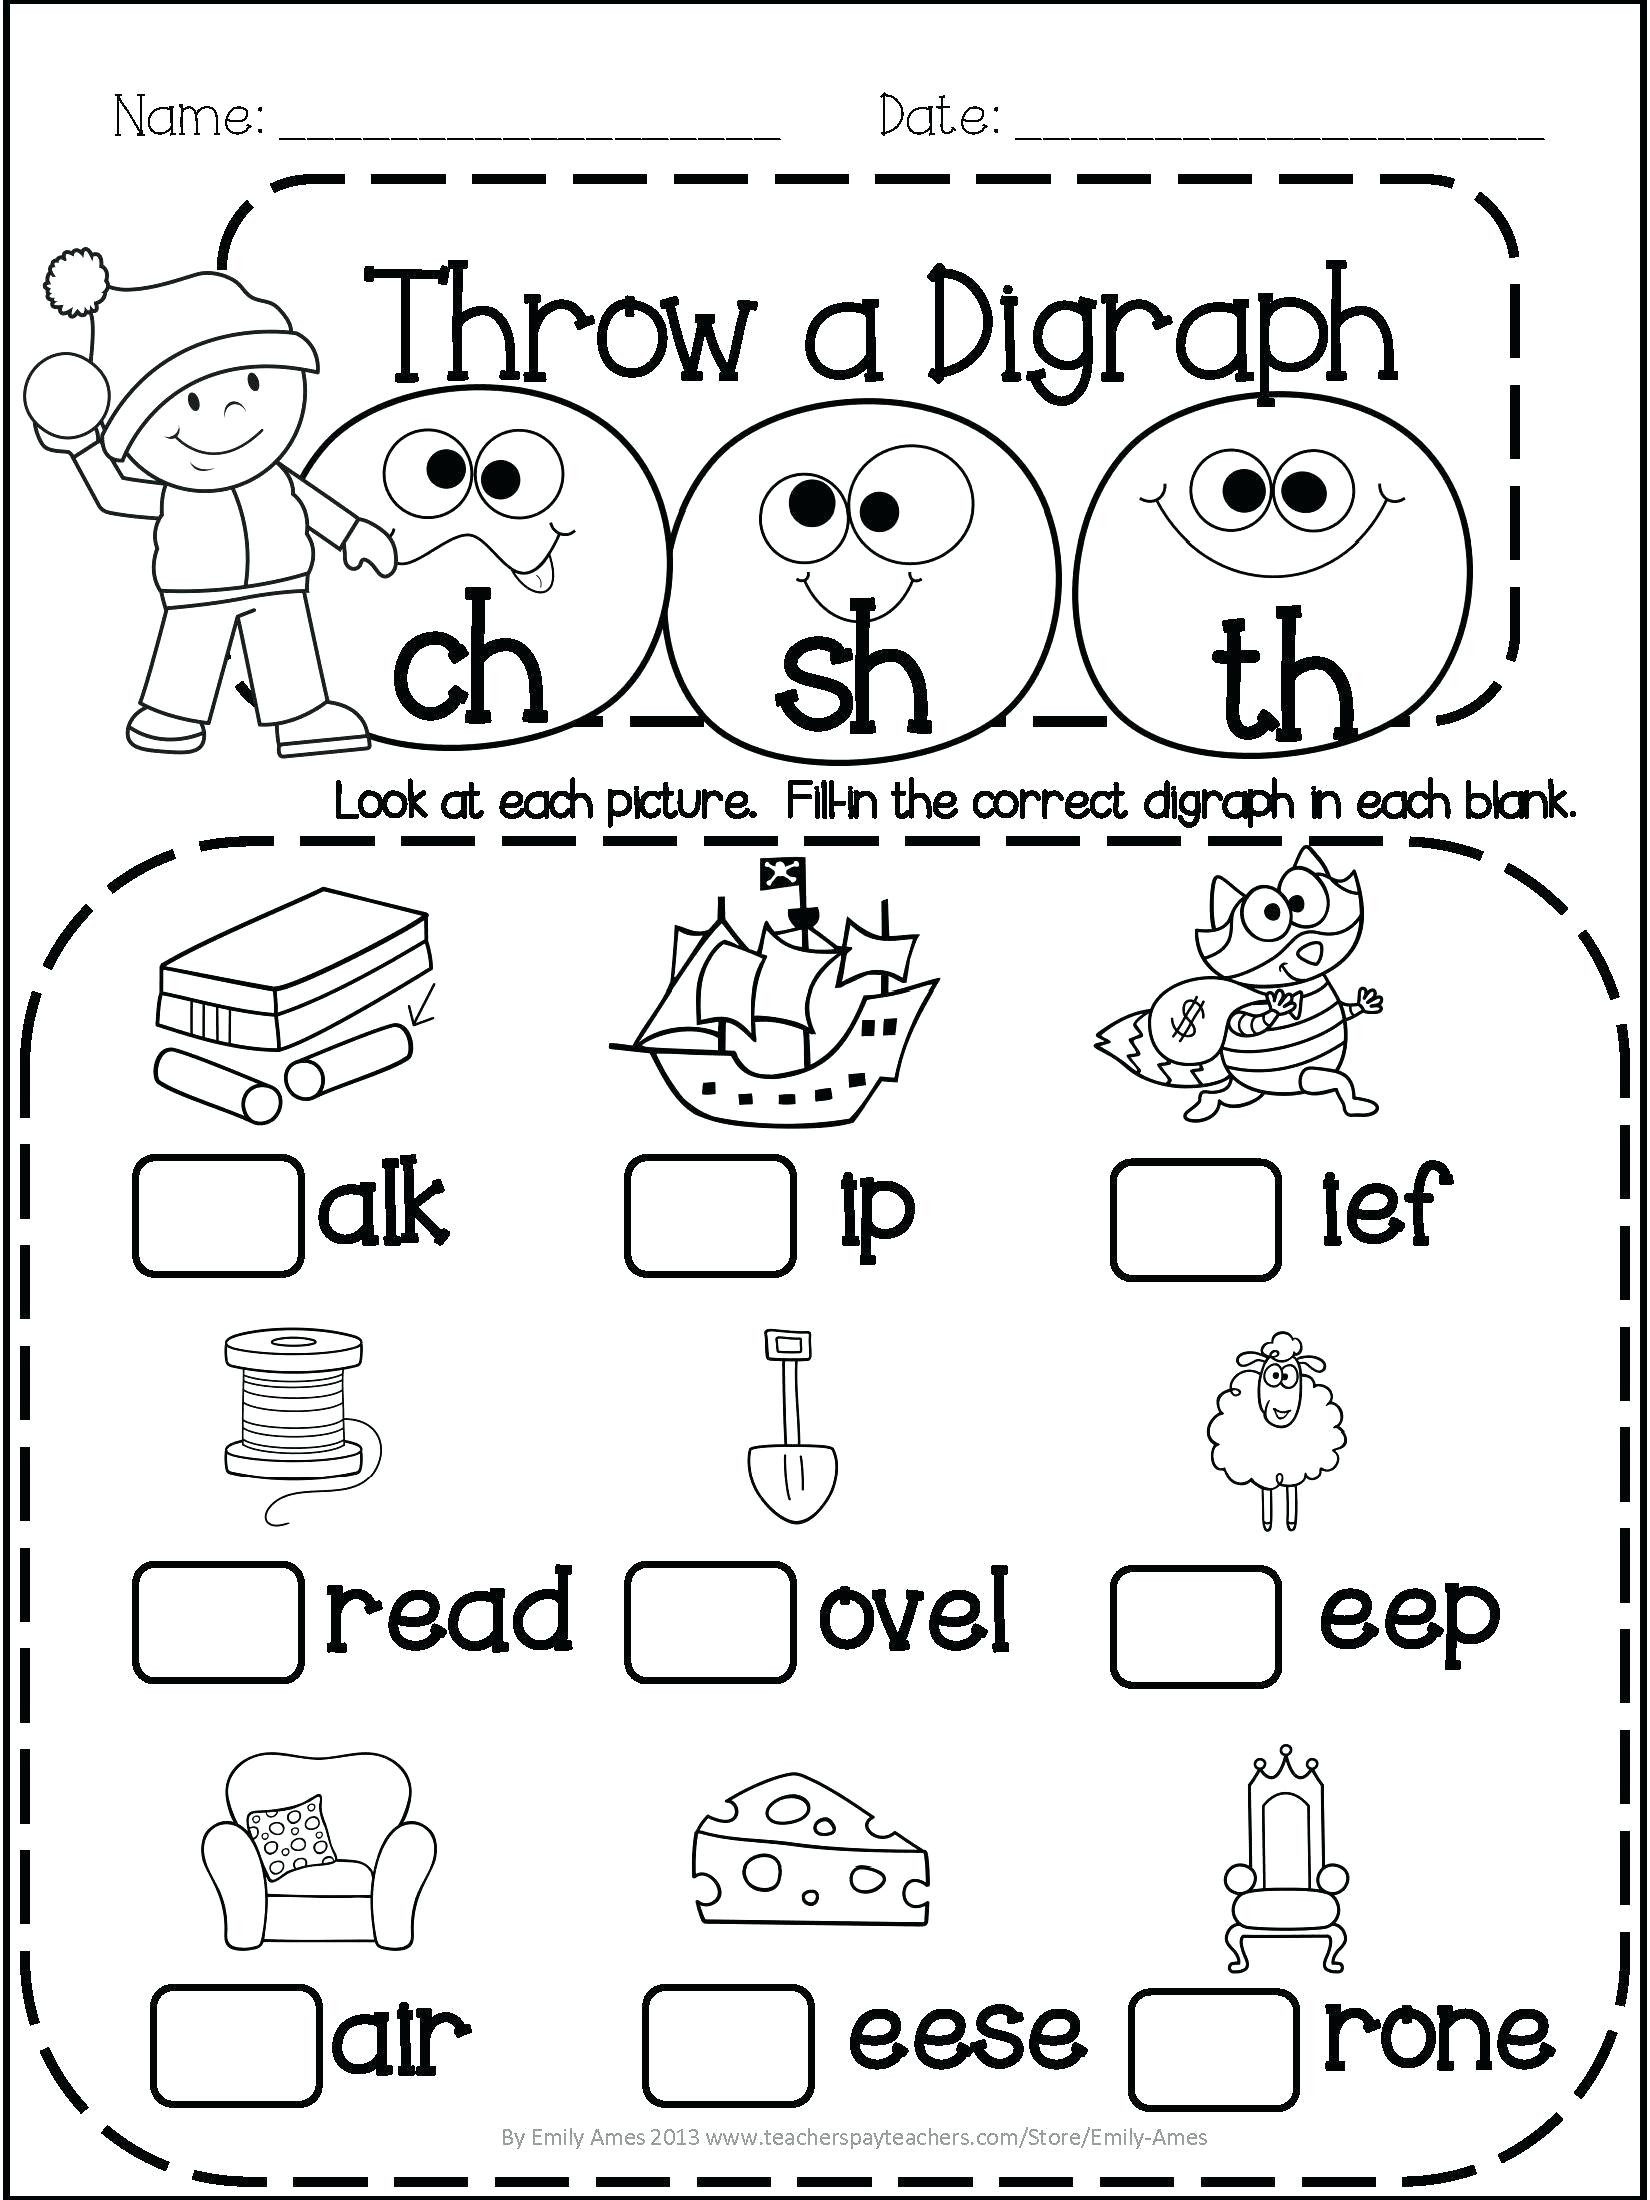 Spring Worksheets for 1st Grade Worksheet Ideas 1st Grade Math and Literacy Printables April